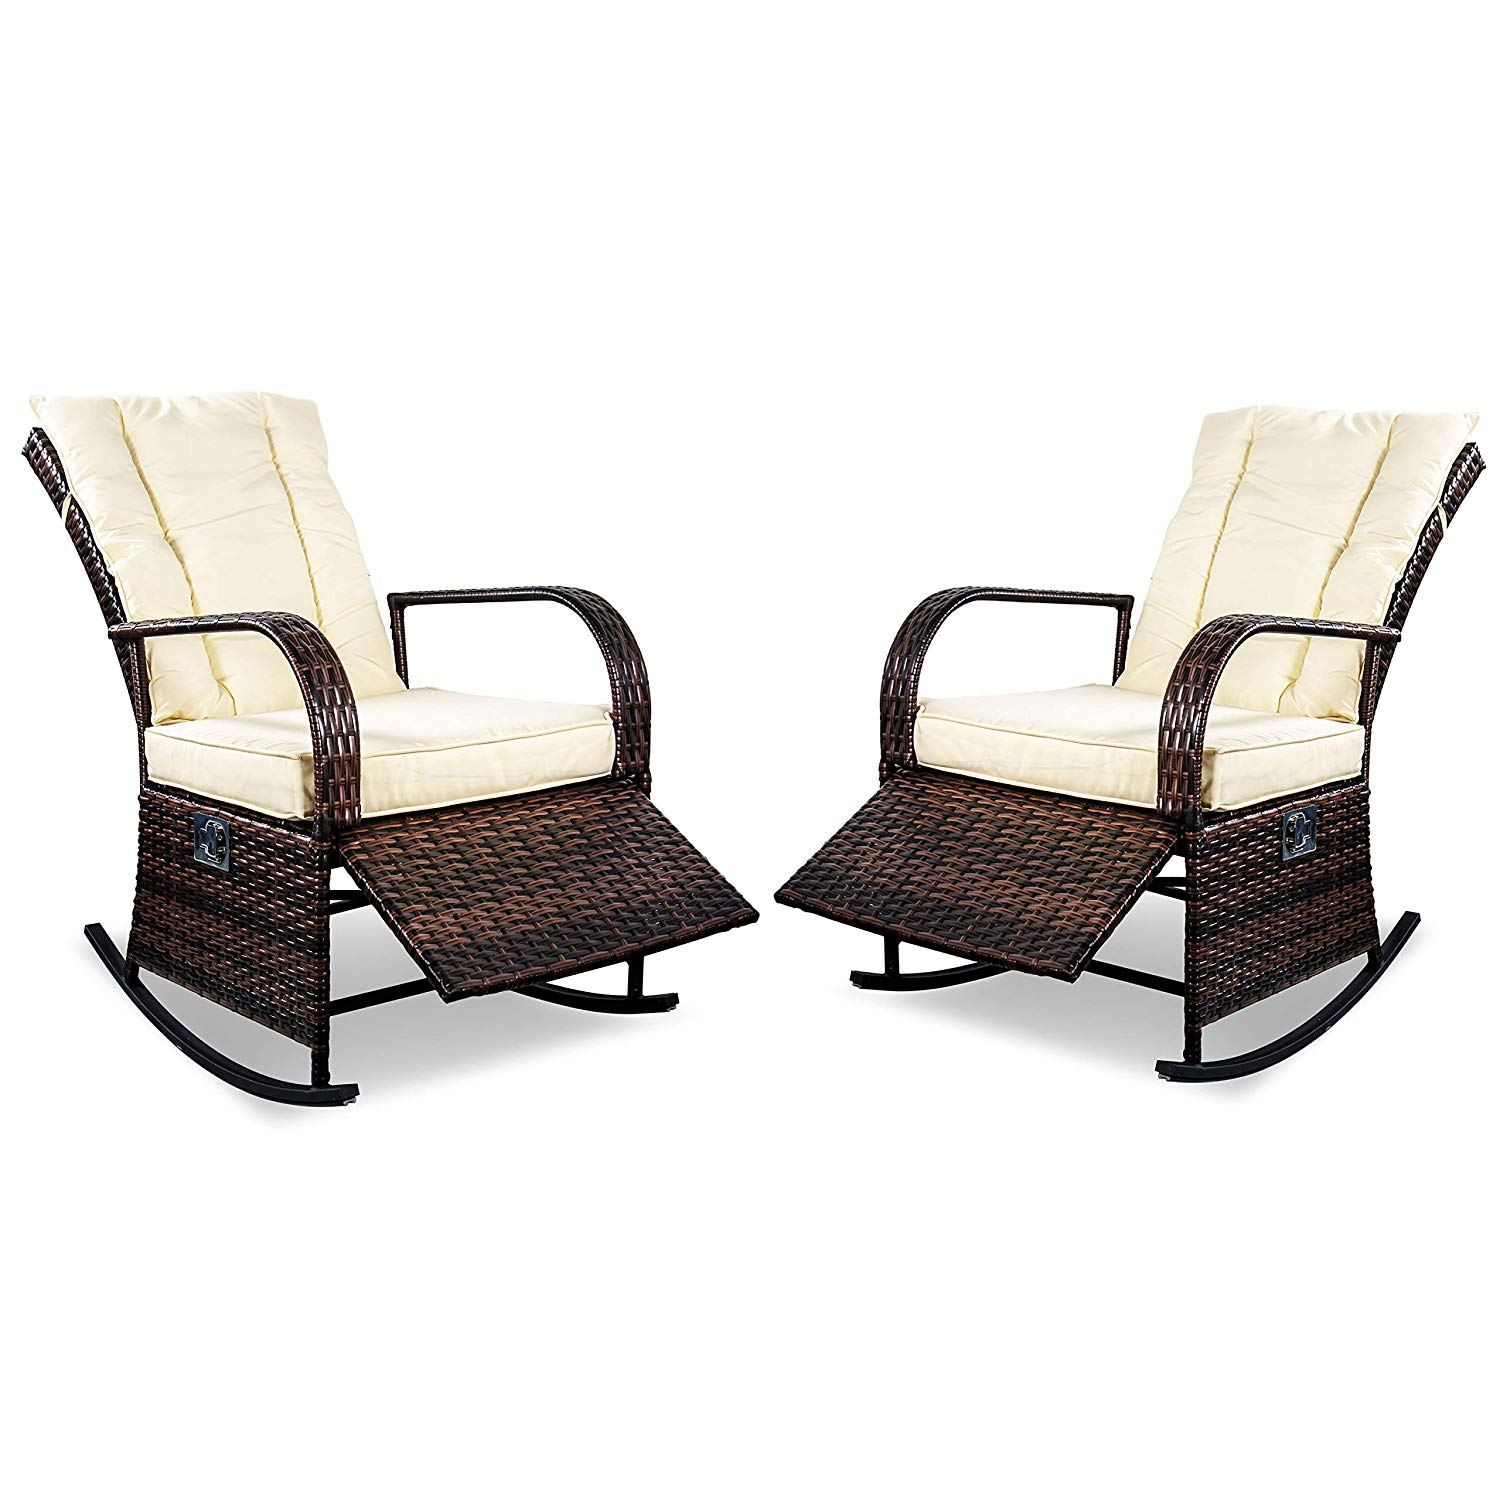 SCYL Color Your Life Set of 2 Outdoor Wicker Rocking Chair with Adjustable Backrest and Footrest,All Weather Patio Porch Deck Reclining Chair w/Cushion